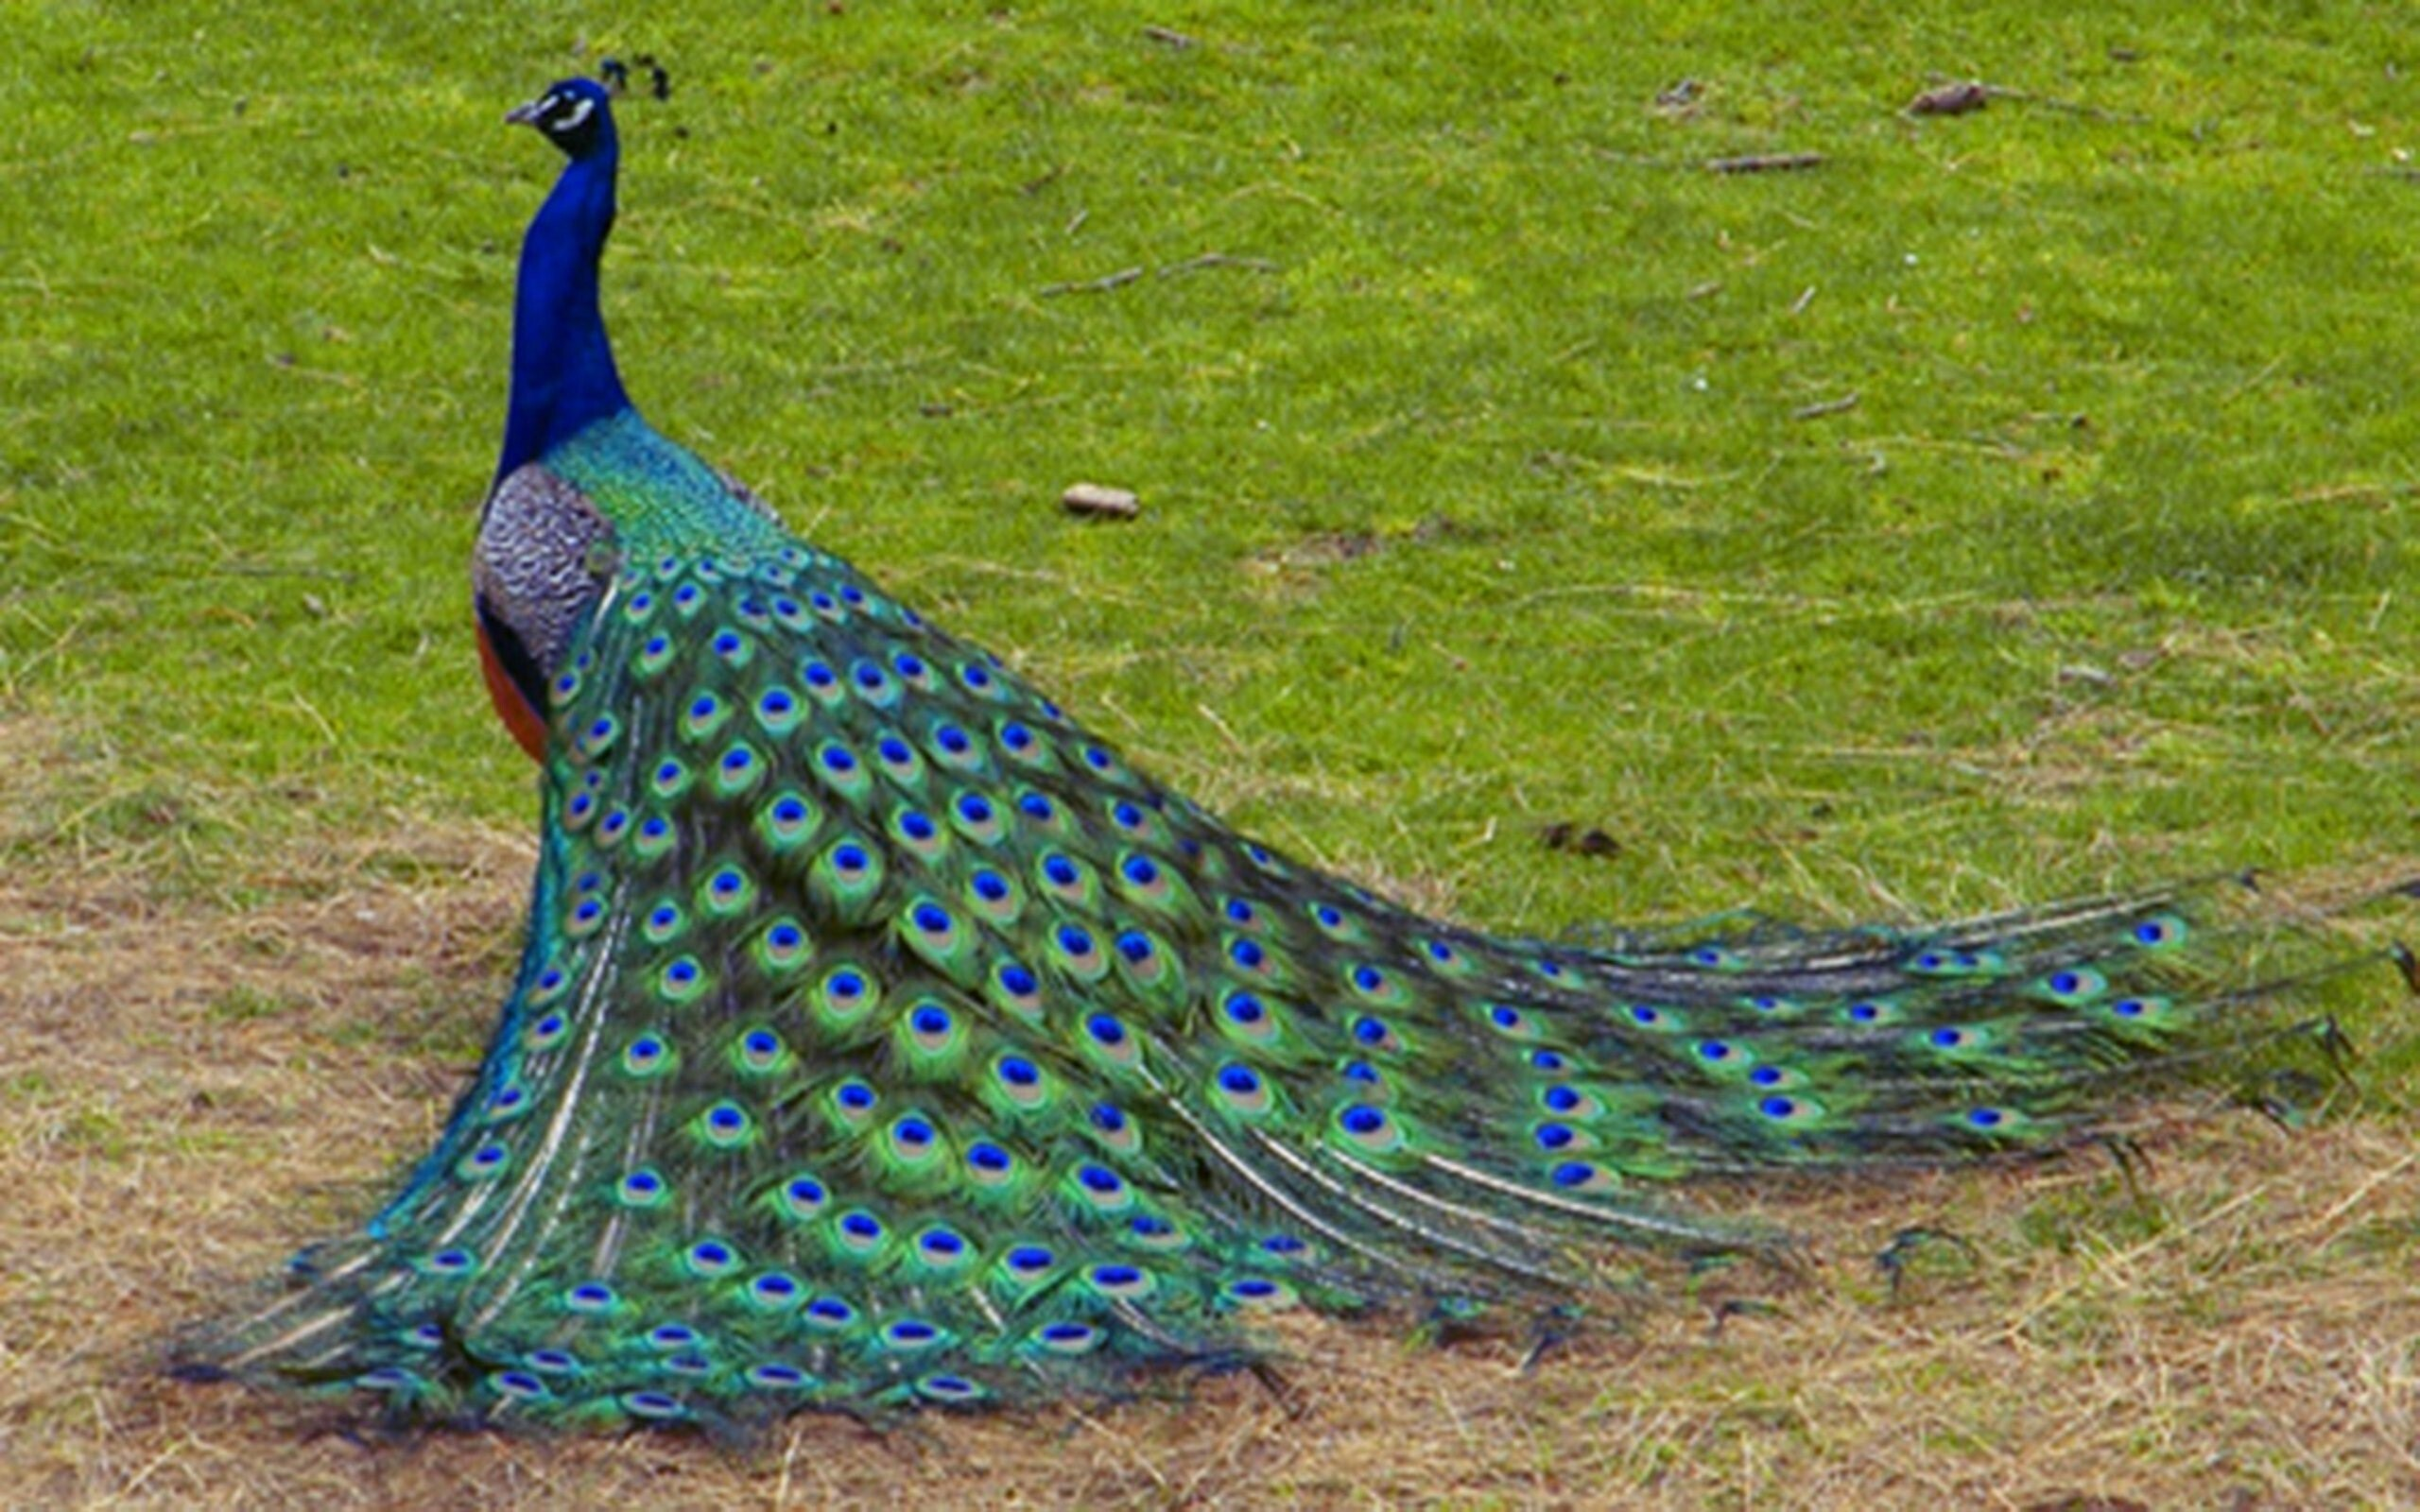 beautiful peacock bird hd desktop wallpaper background | hd wallpapers